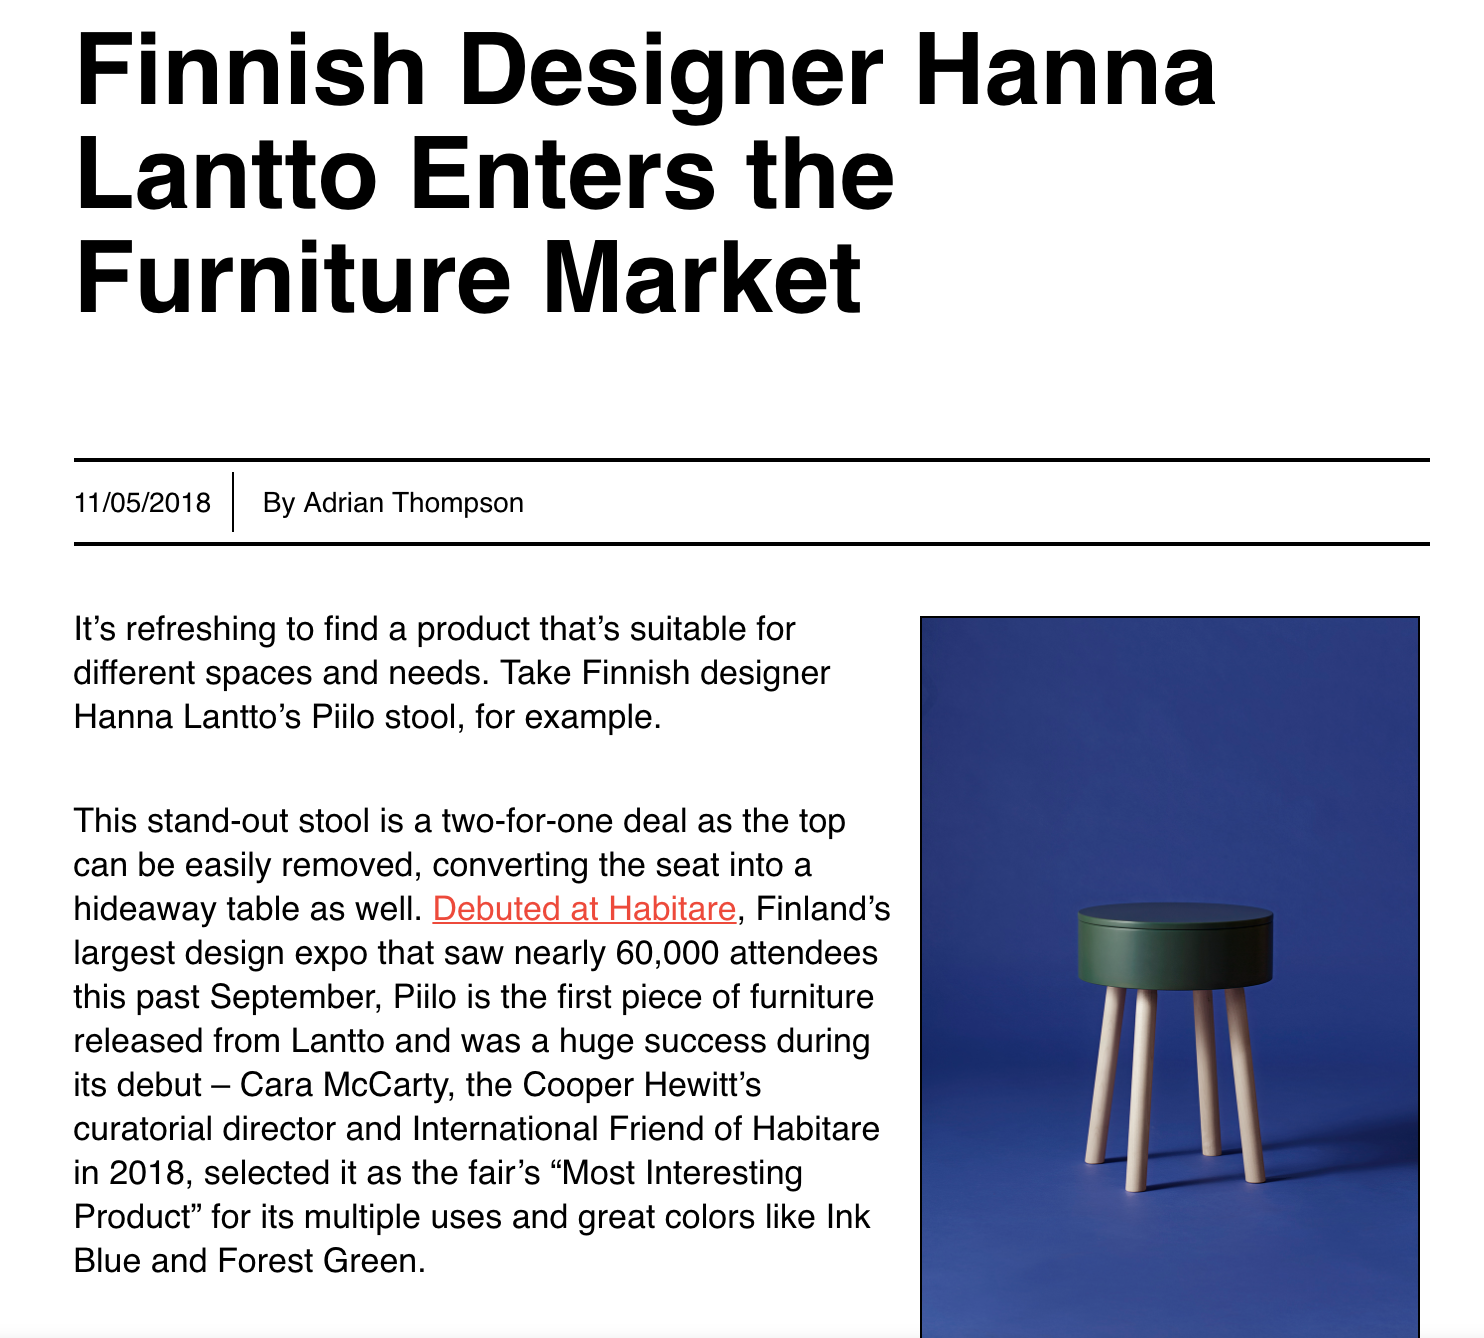 Interiors+Sources: Finnish Designer Hanna Lantto Enters the Furniture Market - Read more >>